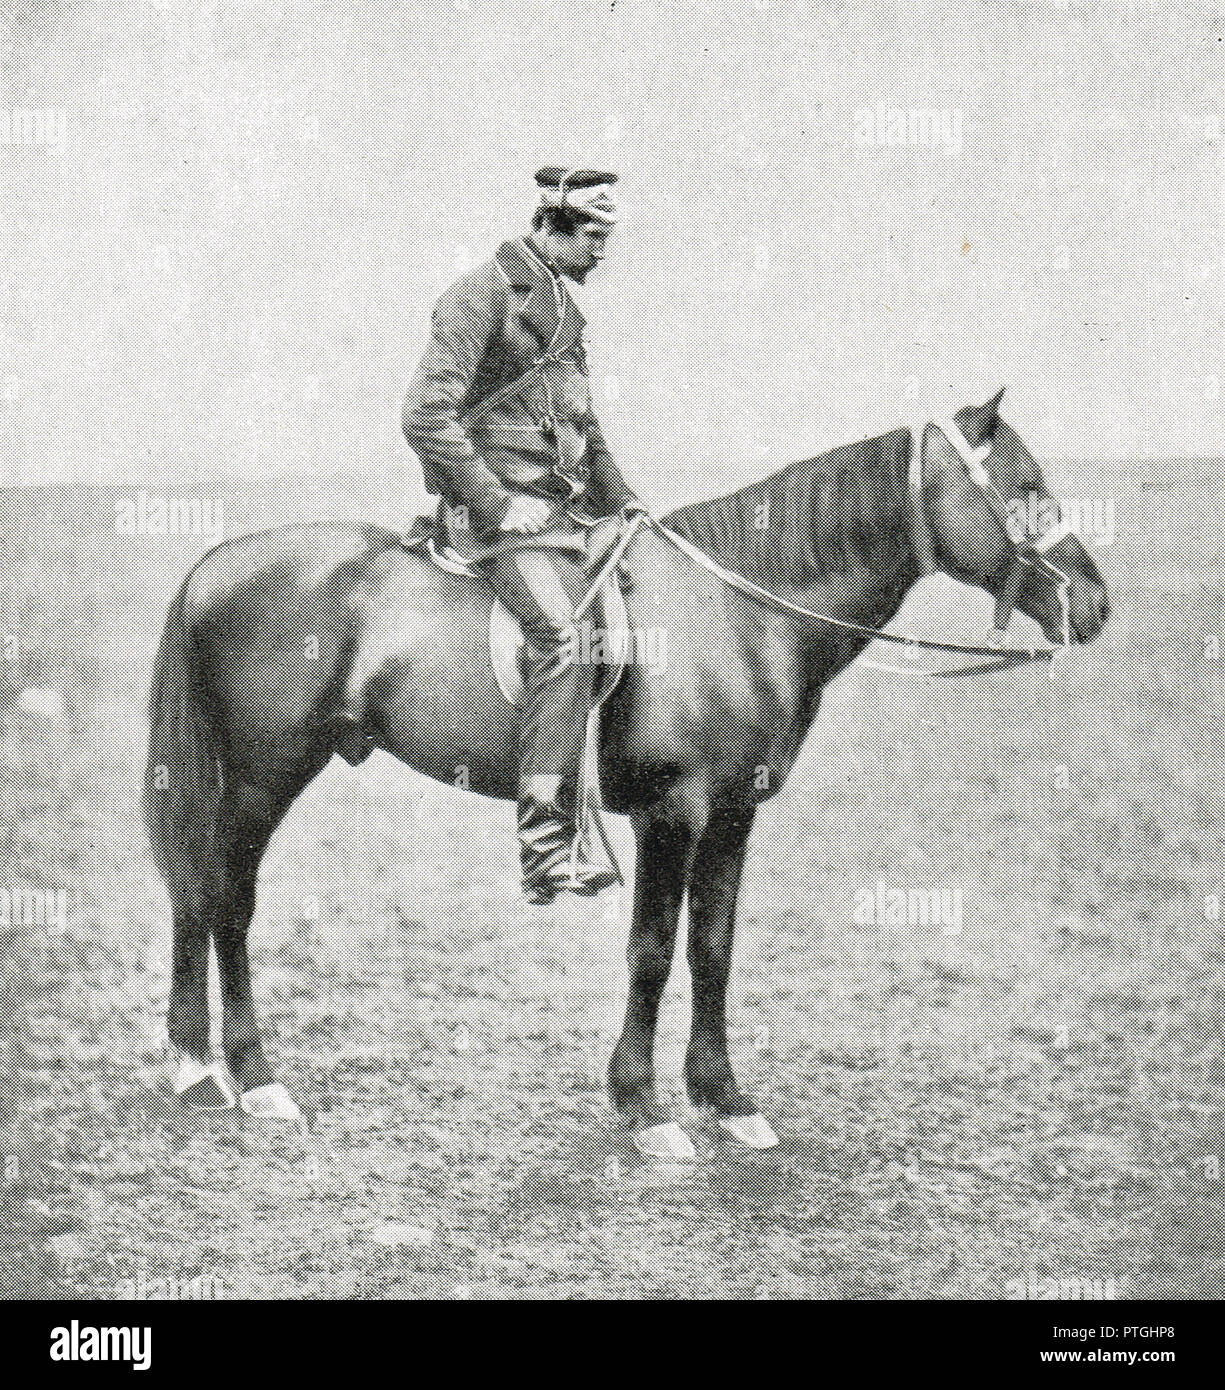 General The Honourable Sir George Cathcart, on horseback during the Crimean War, by Roger Fenton.  Cathcart was killed during the Battle of Inkerman, 5 November 1854 - Stock Image